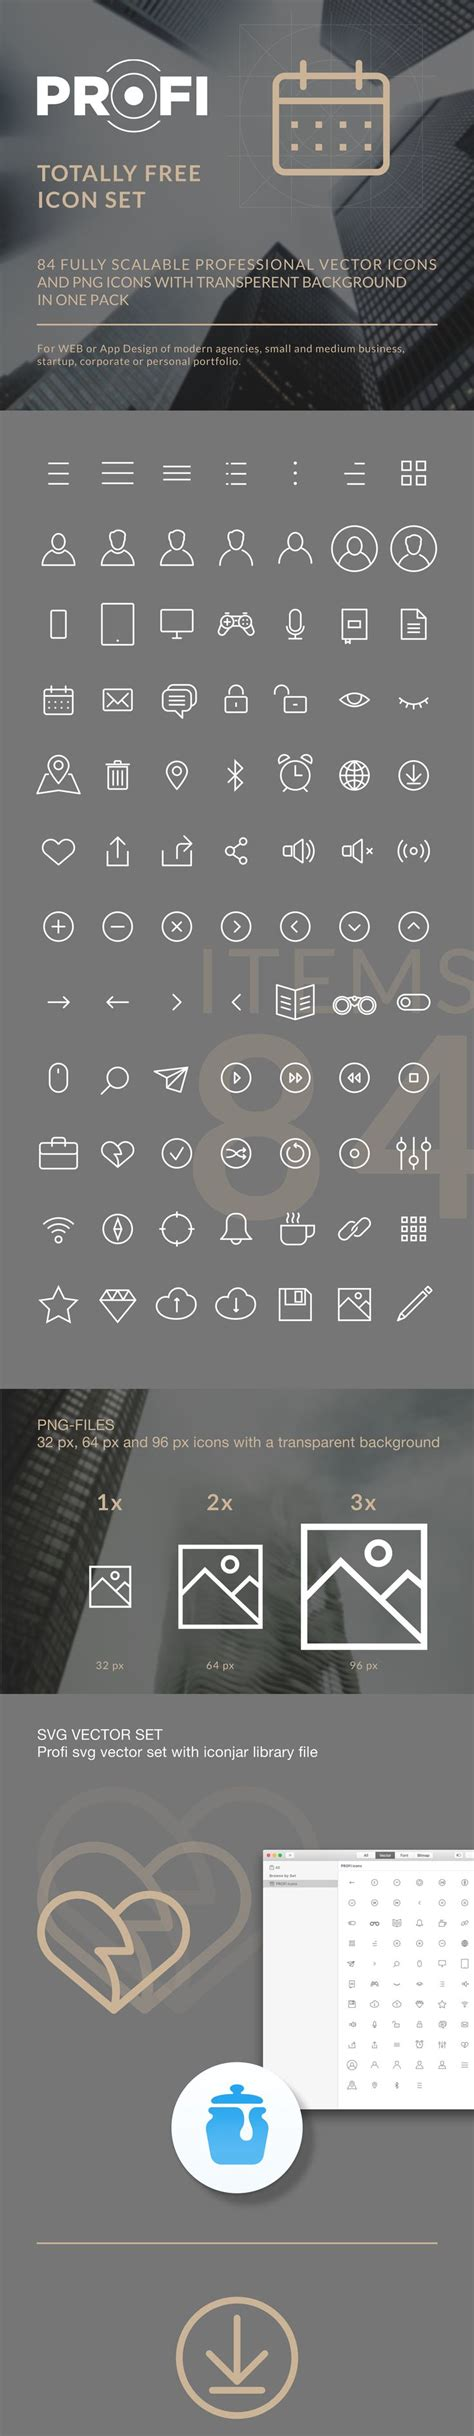 beowulf contains themes that are relevant to modern life 25 best ideas about app background on pinterest